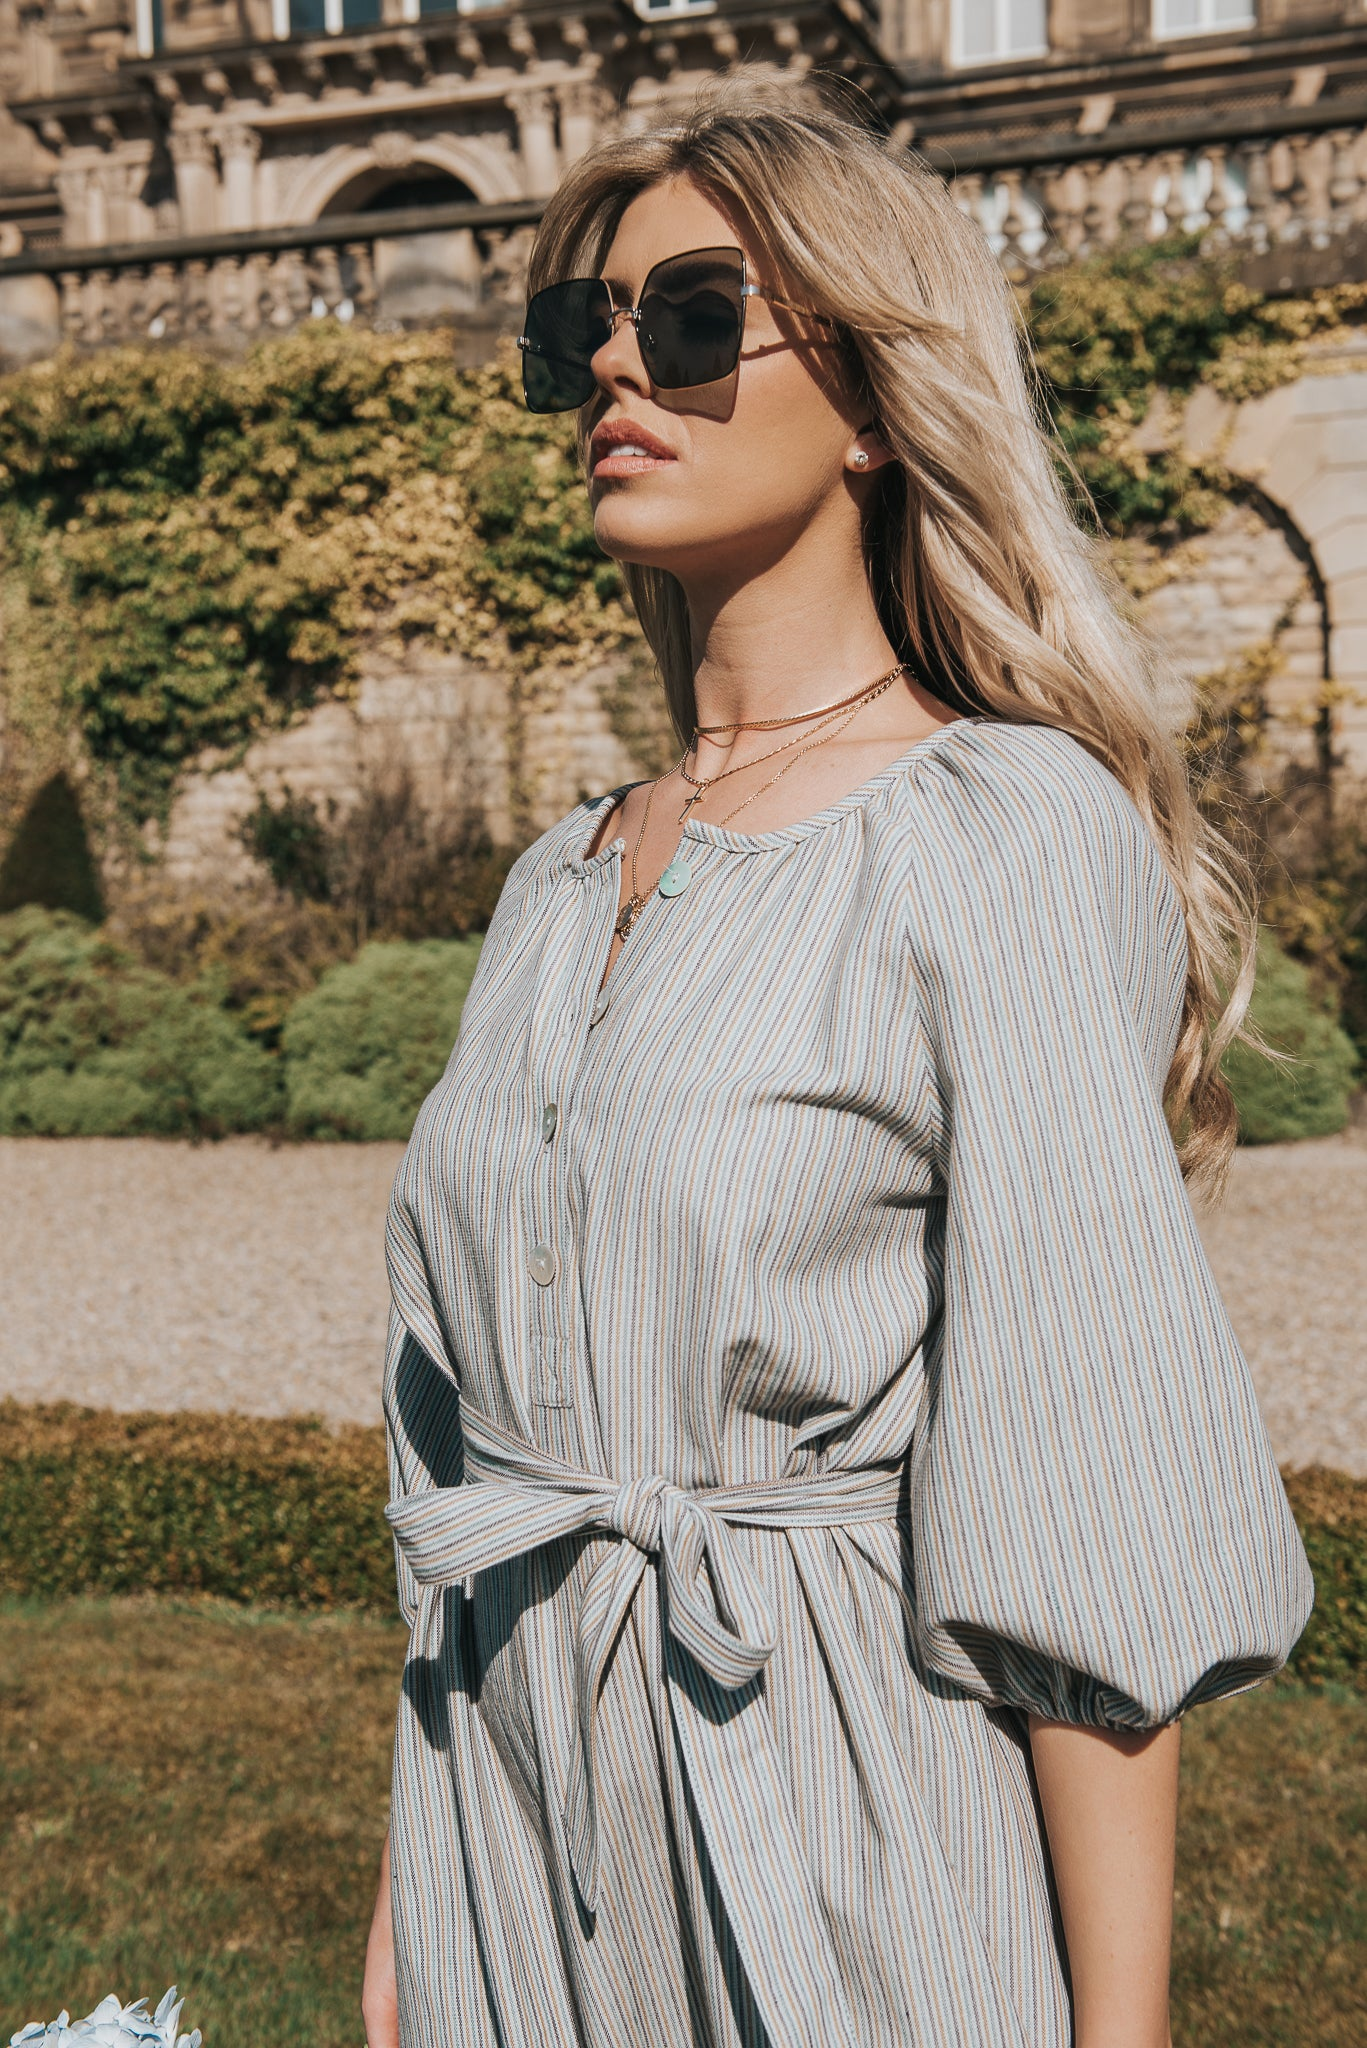 Standing towards the sunlight. The Georgiana dress in Meadow Stripe is shown. The natural shell buttons glint in the sun and the puff sleeve oversized style looks romantic, finished with a belt tie at the waist. Bump and Maternity, Breast feeding friendly